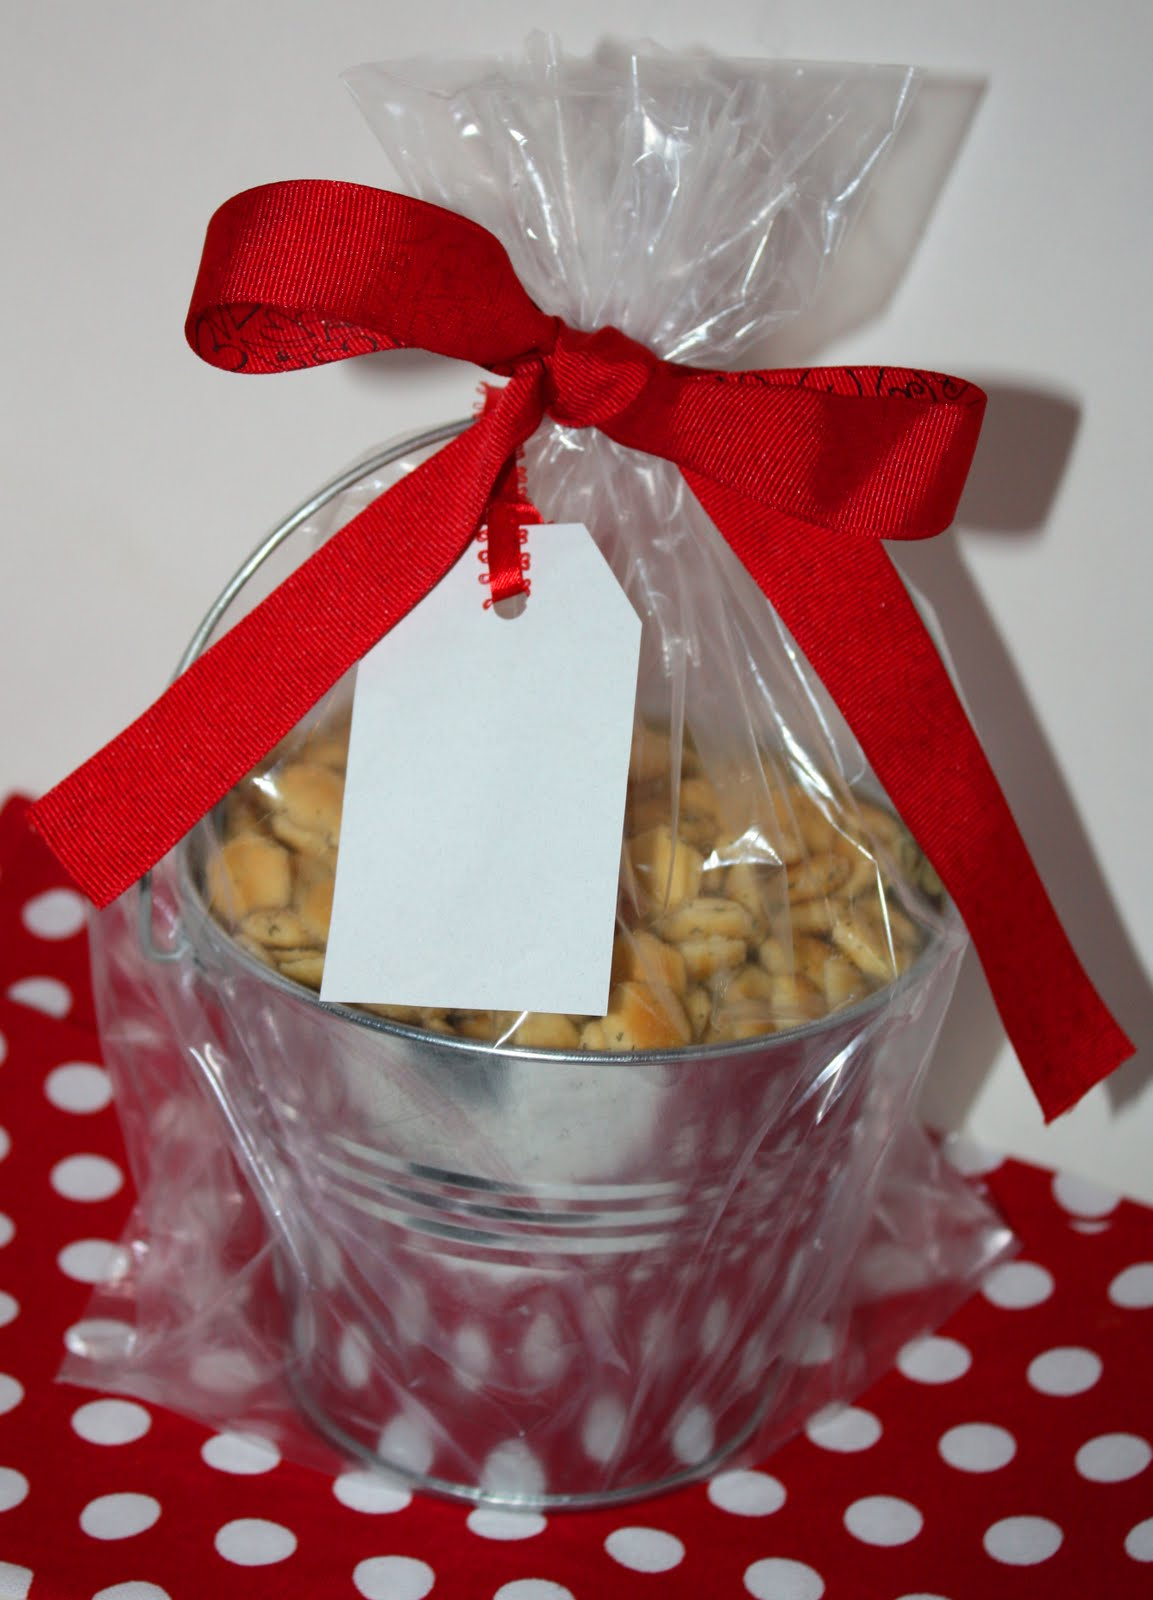 Christy: Homemade Gifts: Seasoned Oyster Crackers